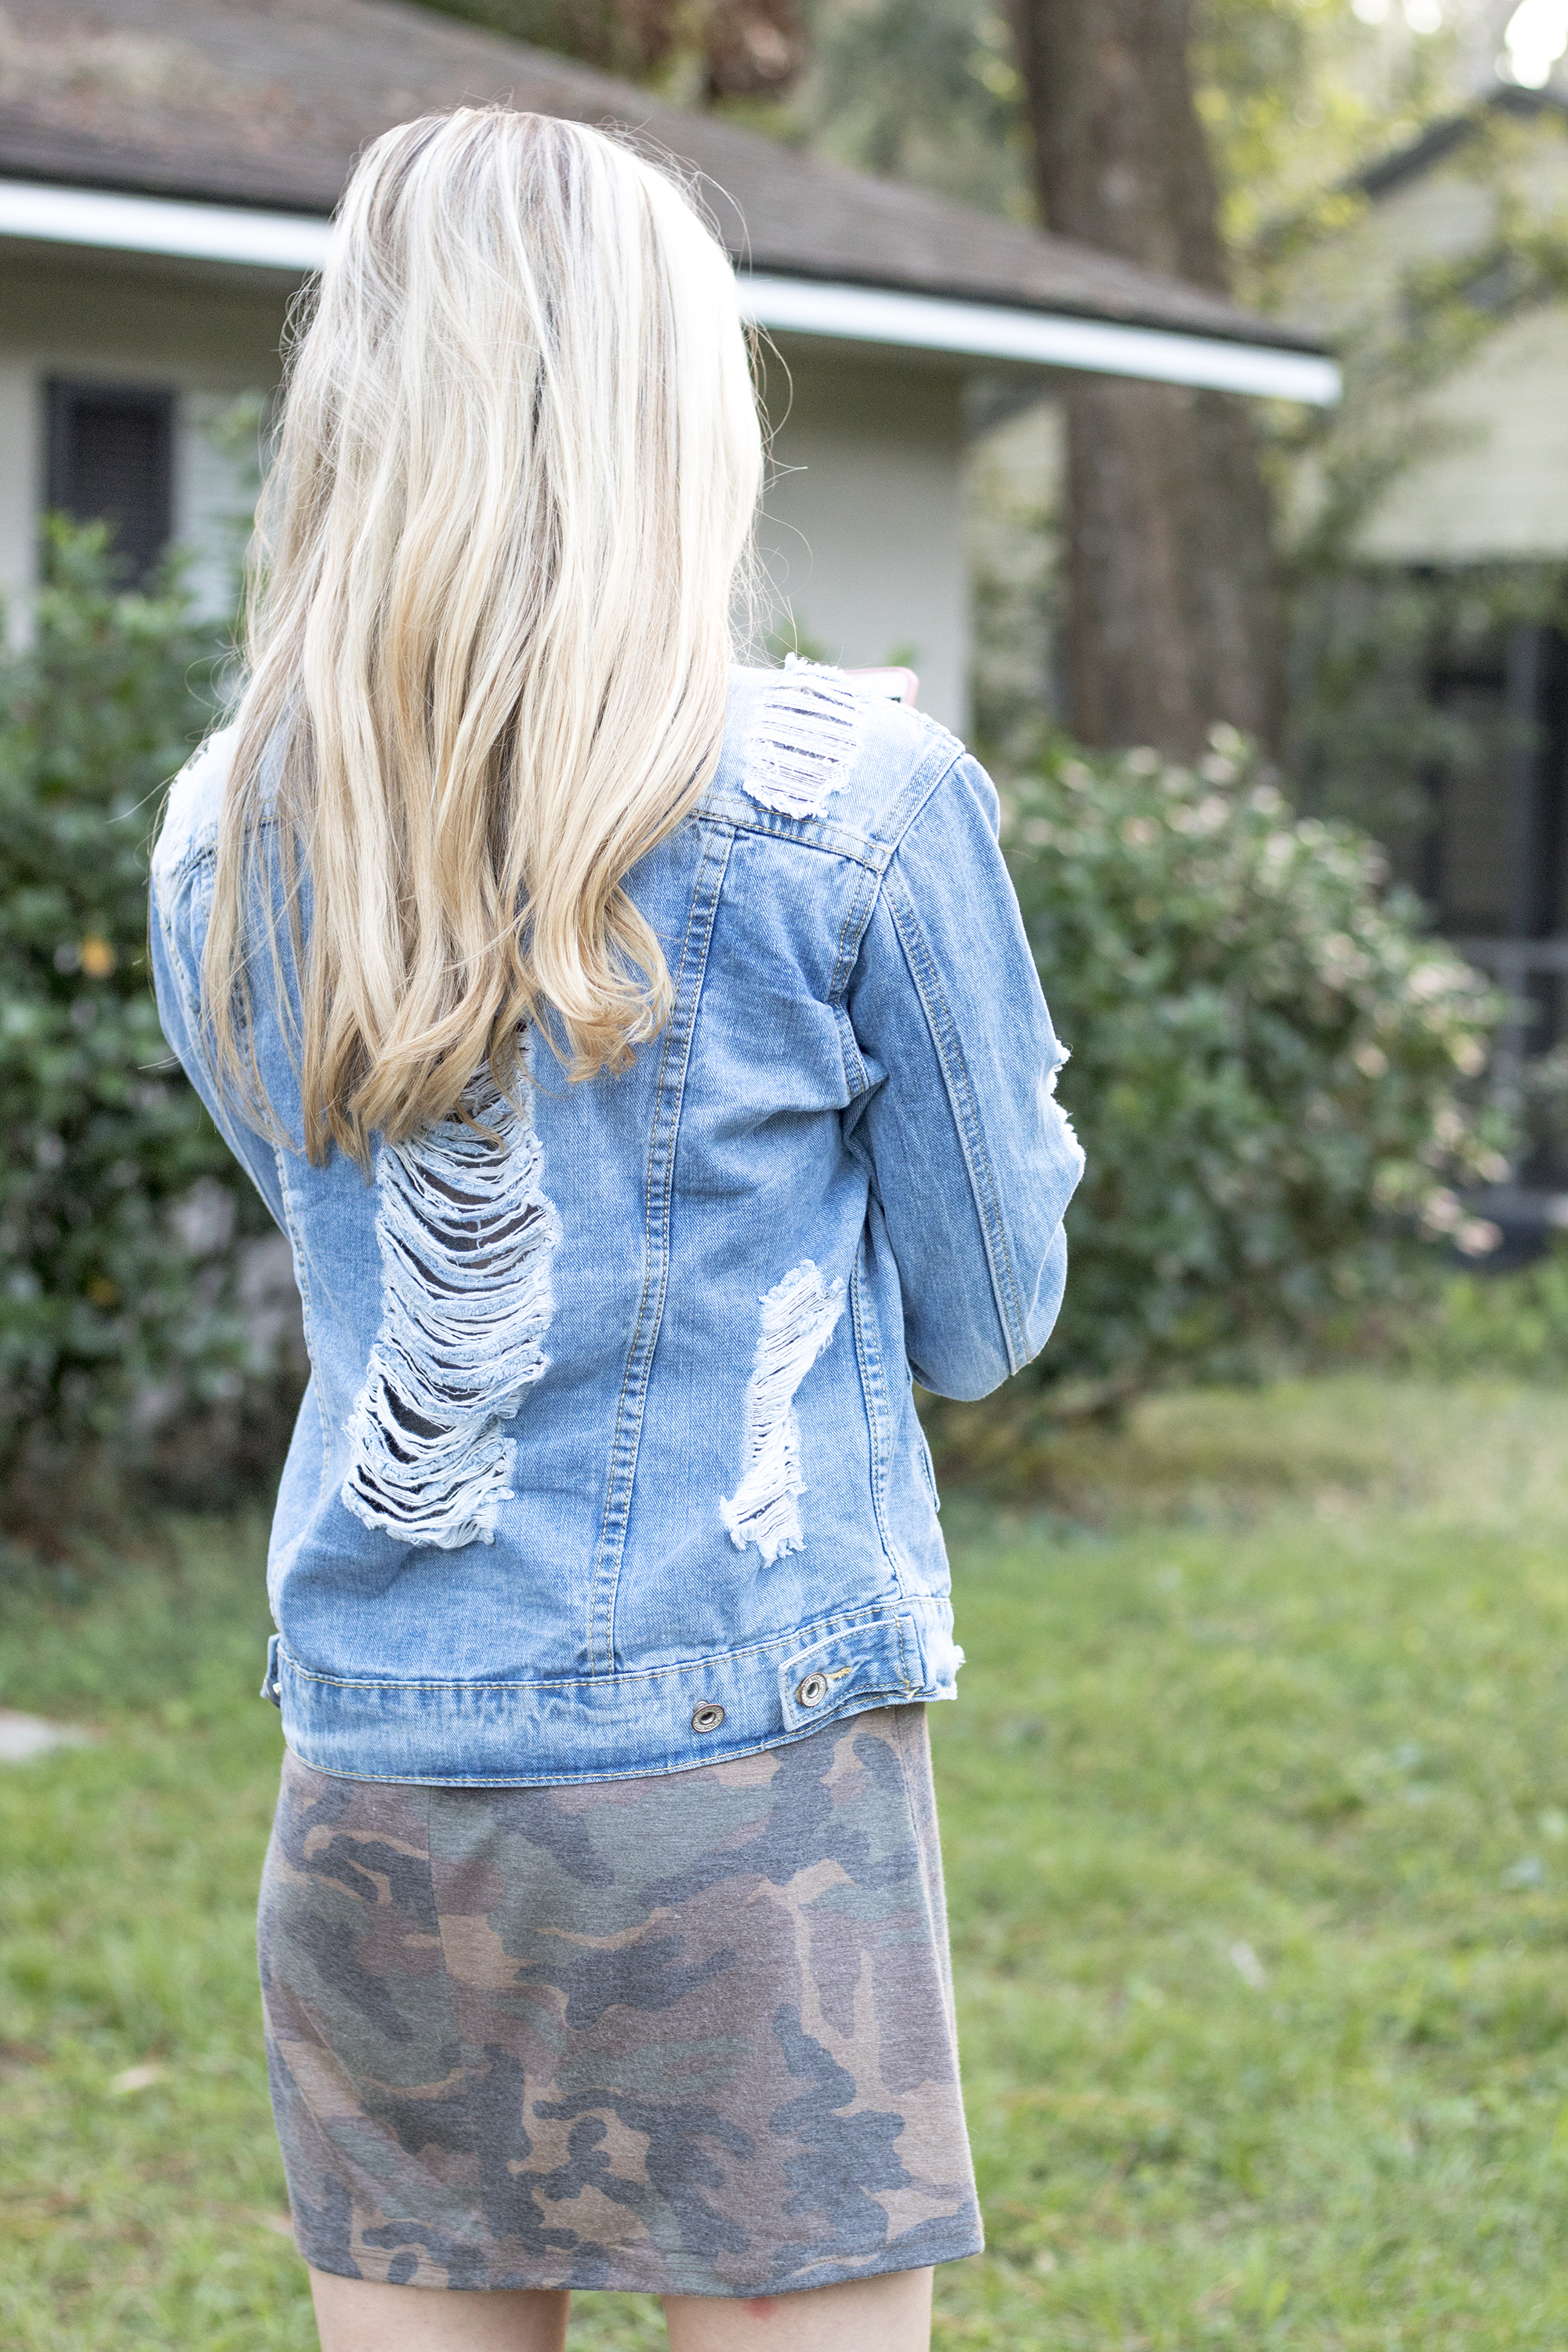 styelled-blog-fashion-style-beauty-lifestyle-blogger-camo-shirt-dress-denim-distressed-jacket-blonde-fall-trends-02